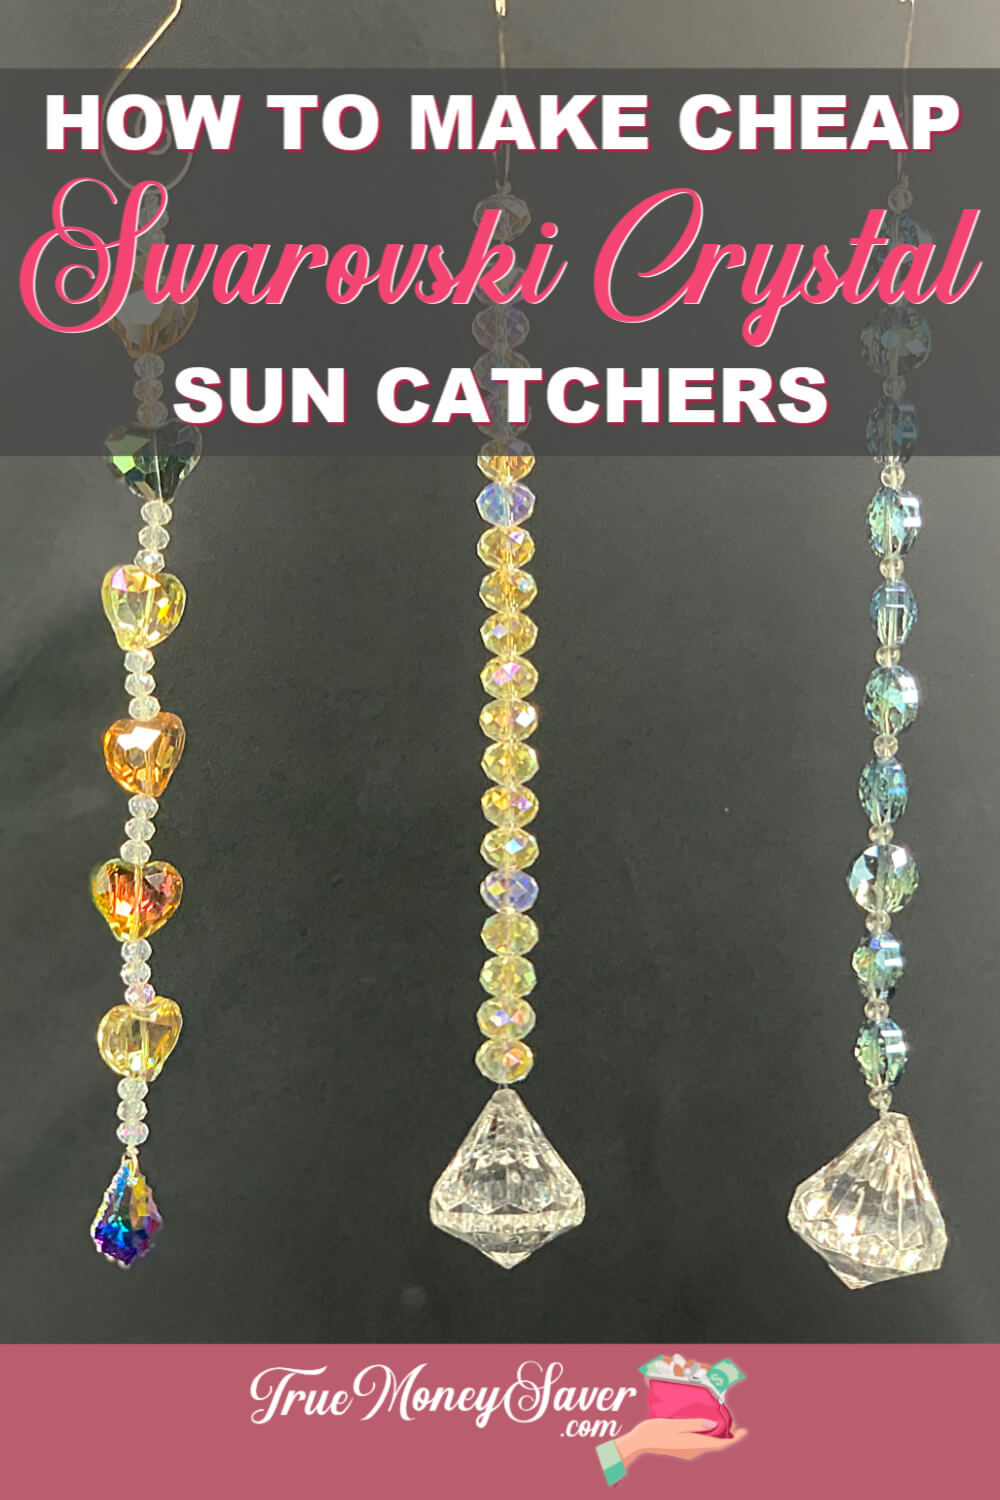 How To Make The Best Swarovski Crystal Sun Catcher Gifts